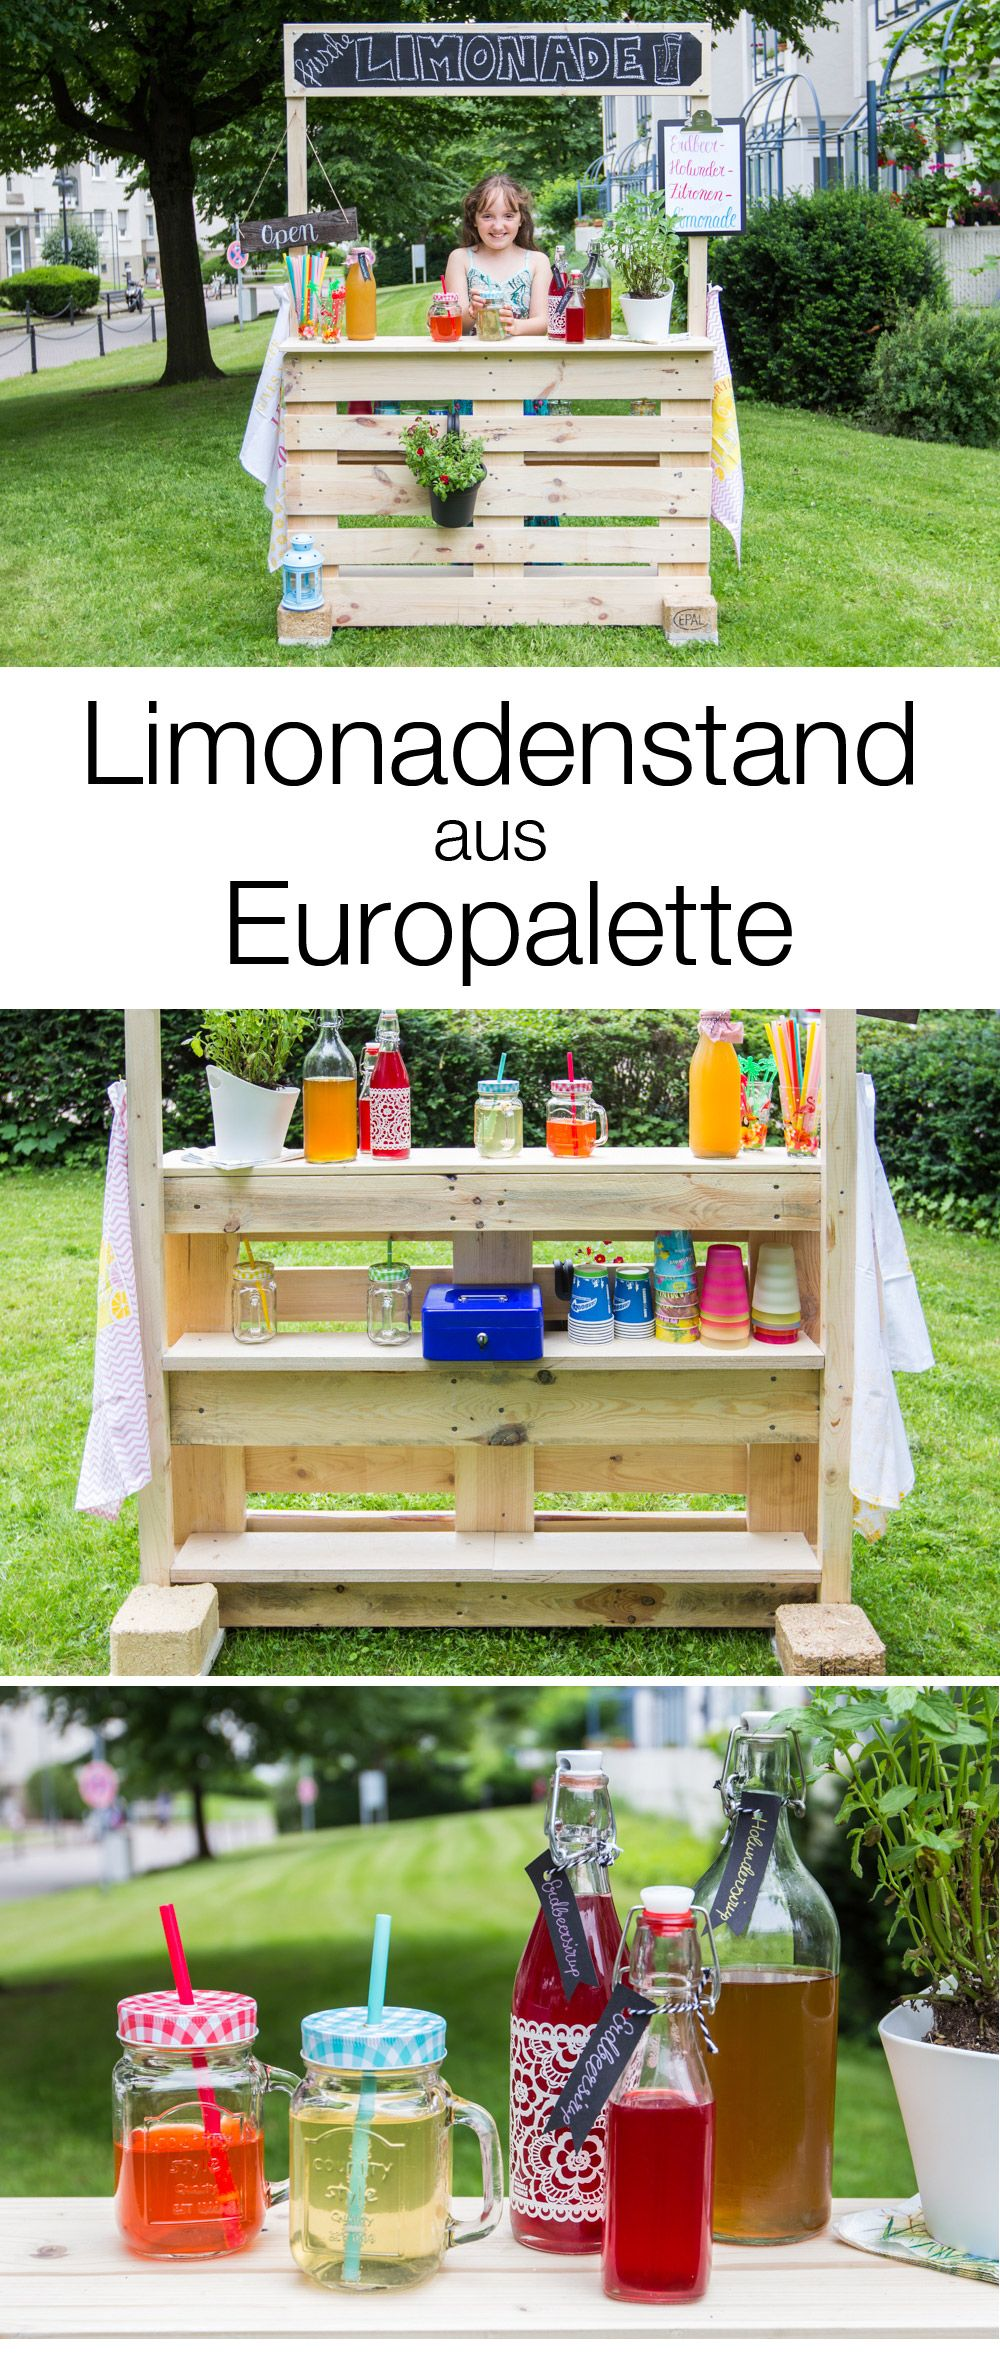 diy limonadenstand aus europalette bauen diy ideen basteln selbermachen pinterest. Black Bedroom Furniture Sets. Home Design Ideas